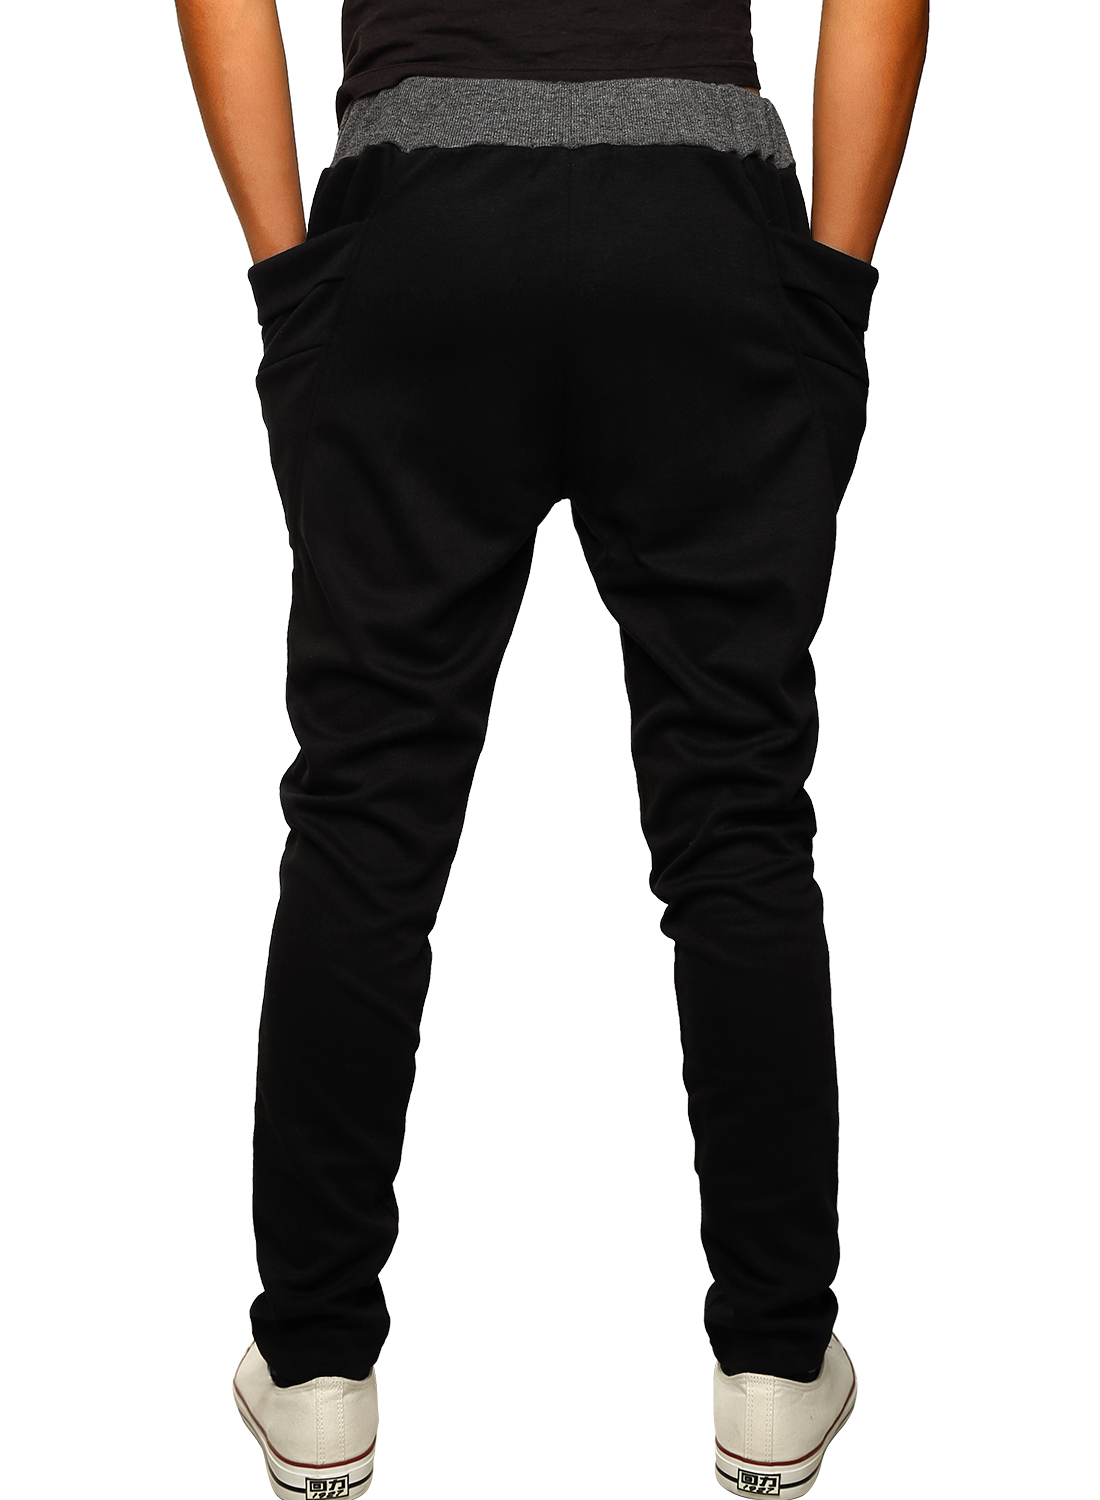 Trending: Men's Joggers & Tapered Pants. Men's joggers are an athletic essential. These ultra-comfortable, tapered-bottom pants go where your day takes you, from the weight room to the track and anywhere in between.